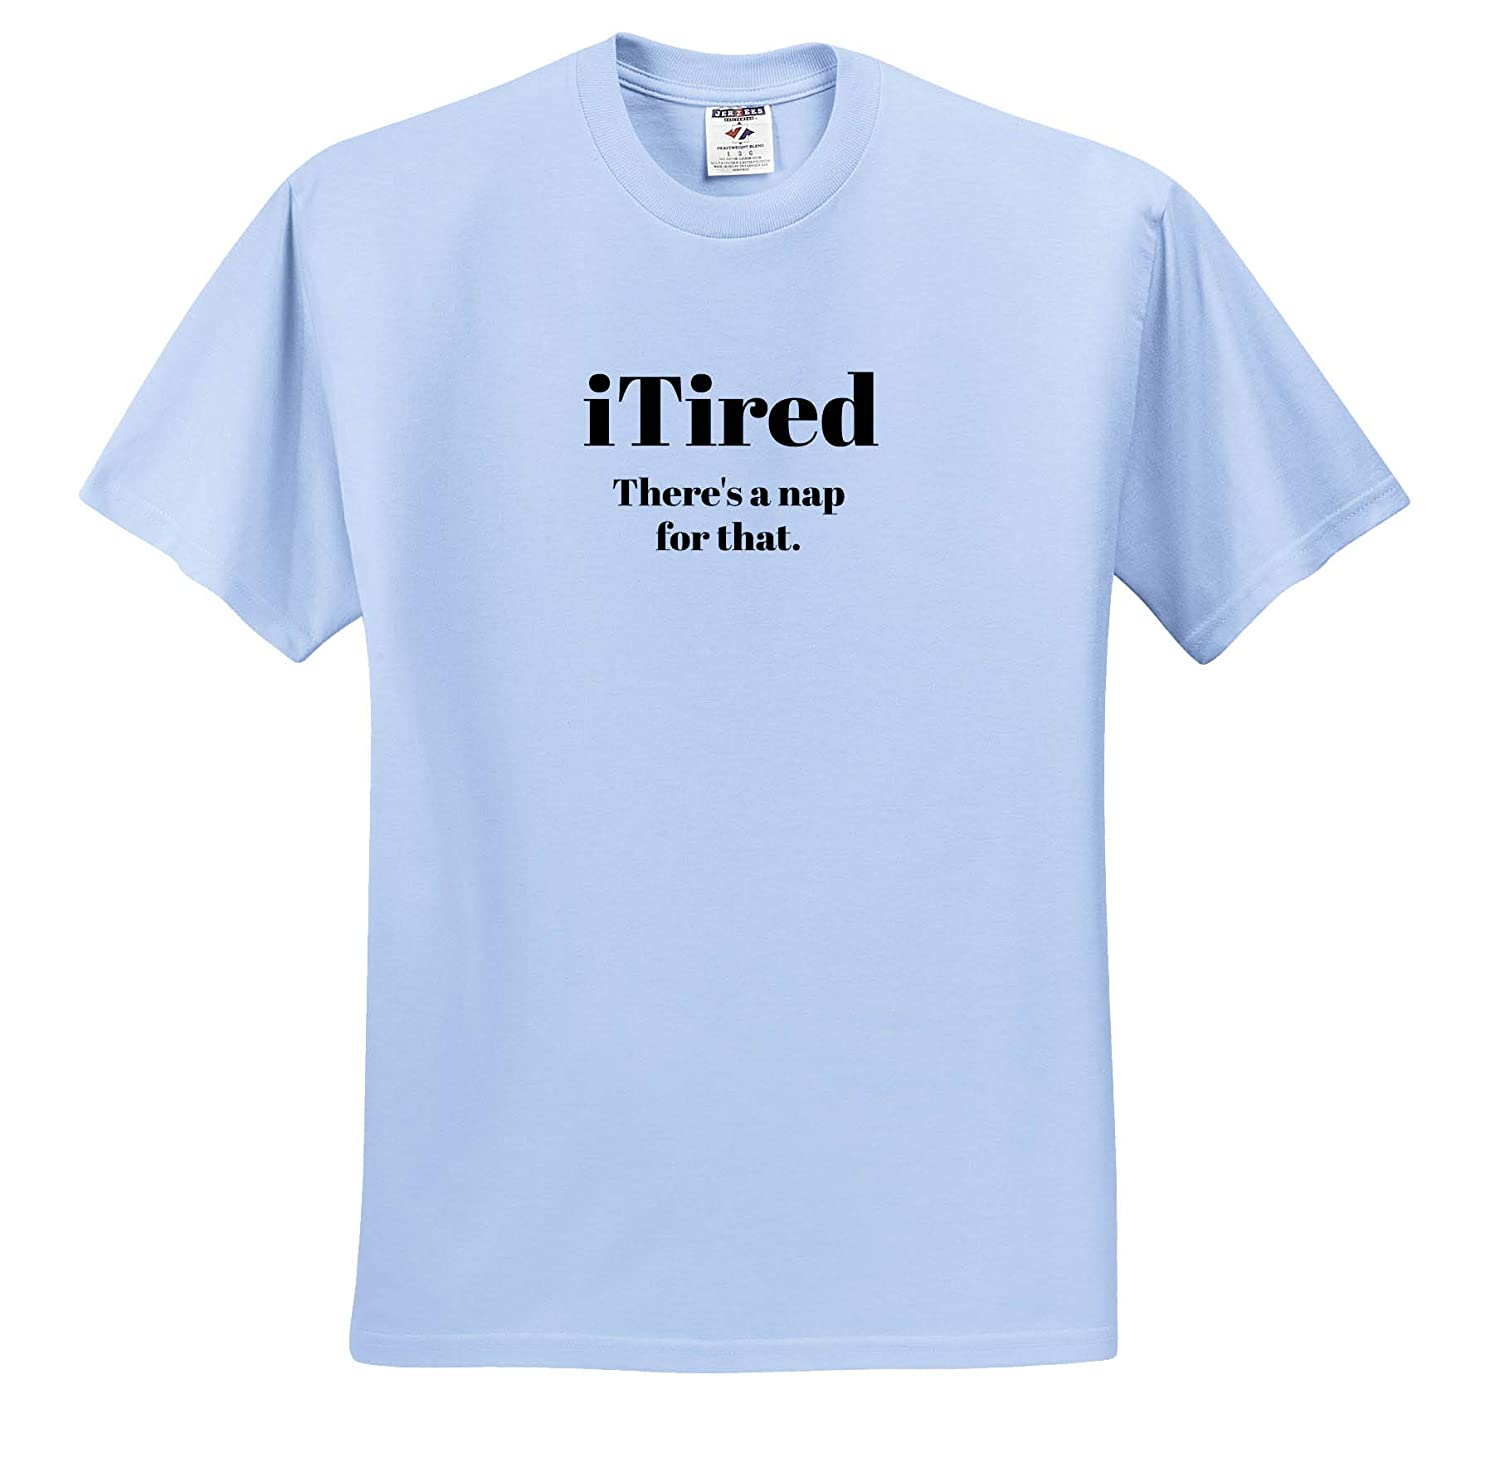 ts/_319465 Adult T-Shirt XL Image of iTired Theres A Nap for That Quote 3dRose Gabriella-Quote